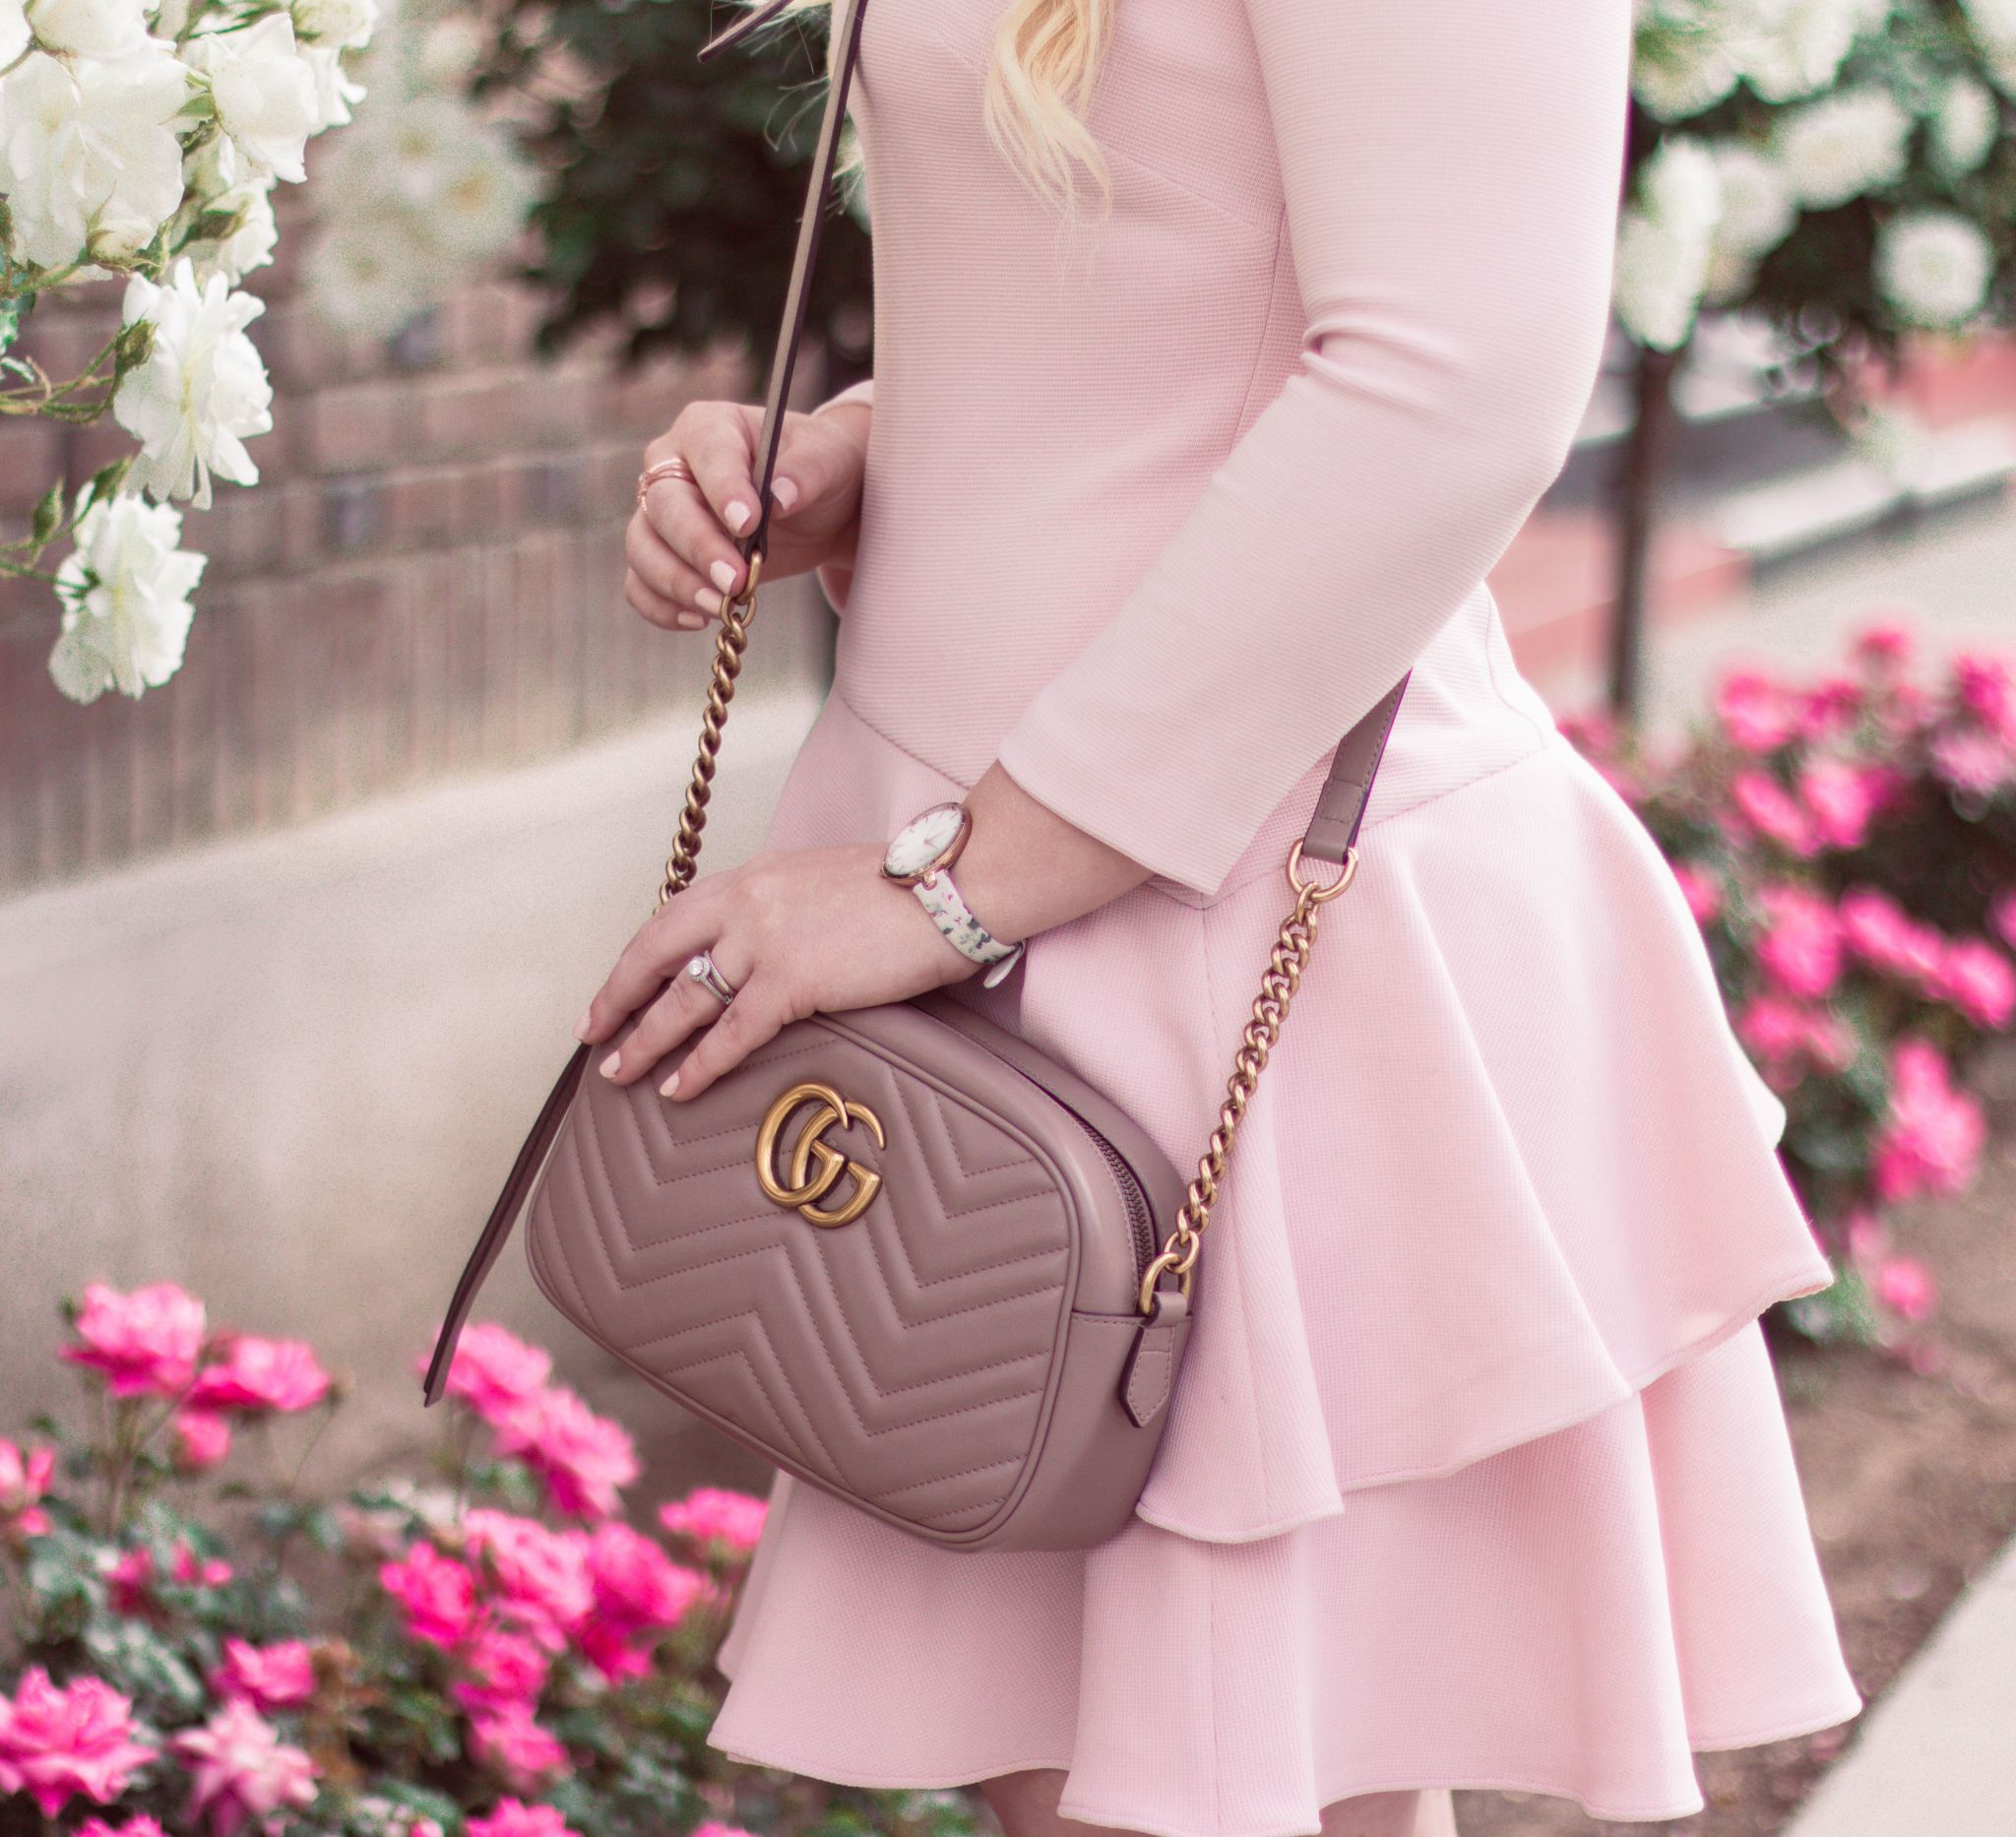 Fashion Blogger Elizabeth Hugen of Lizzie in Lace shares her girly handbag collection